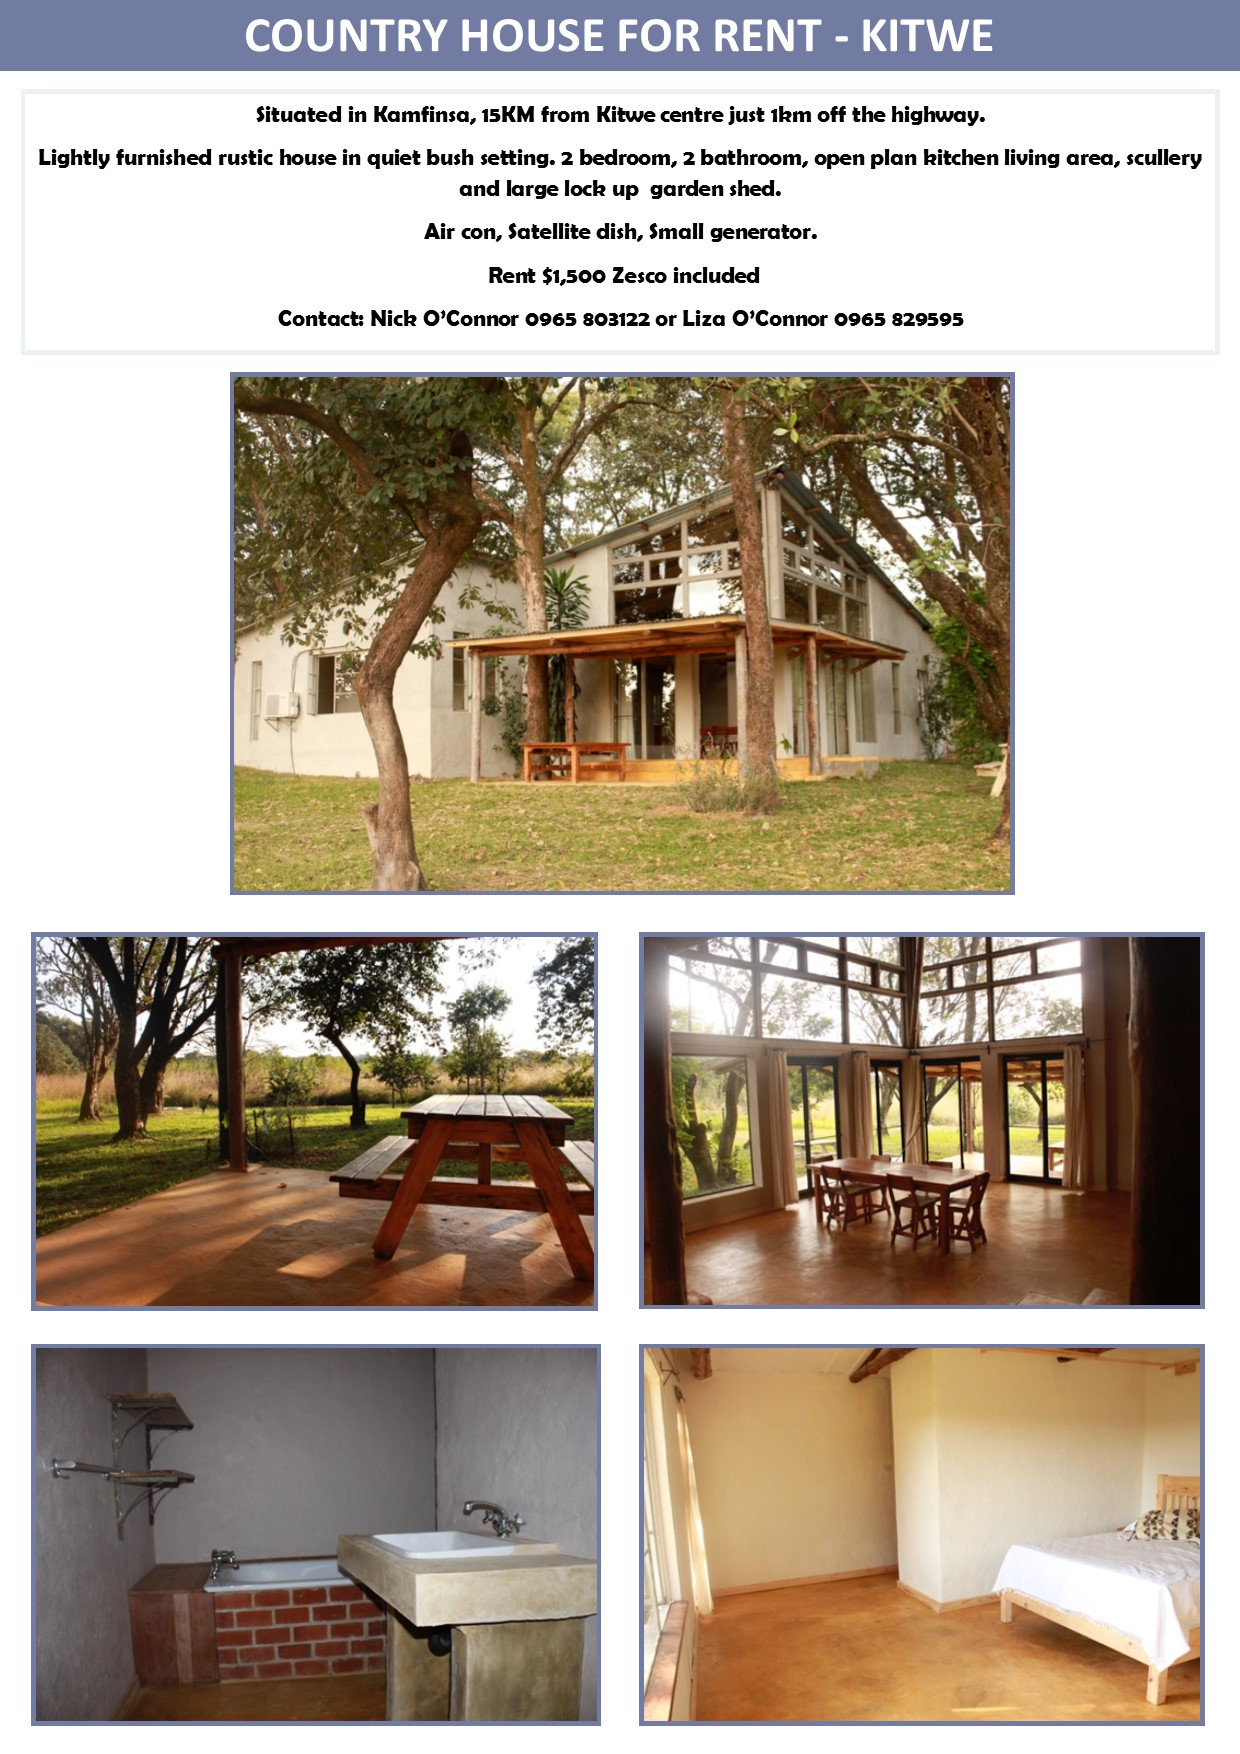 20 05 2016 - country house for rent